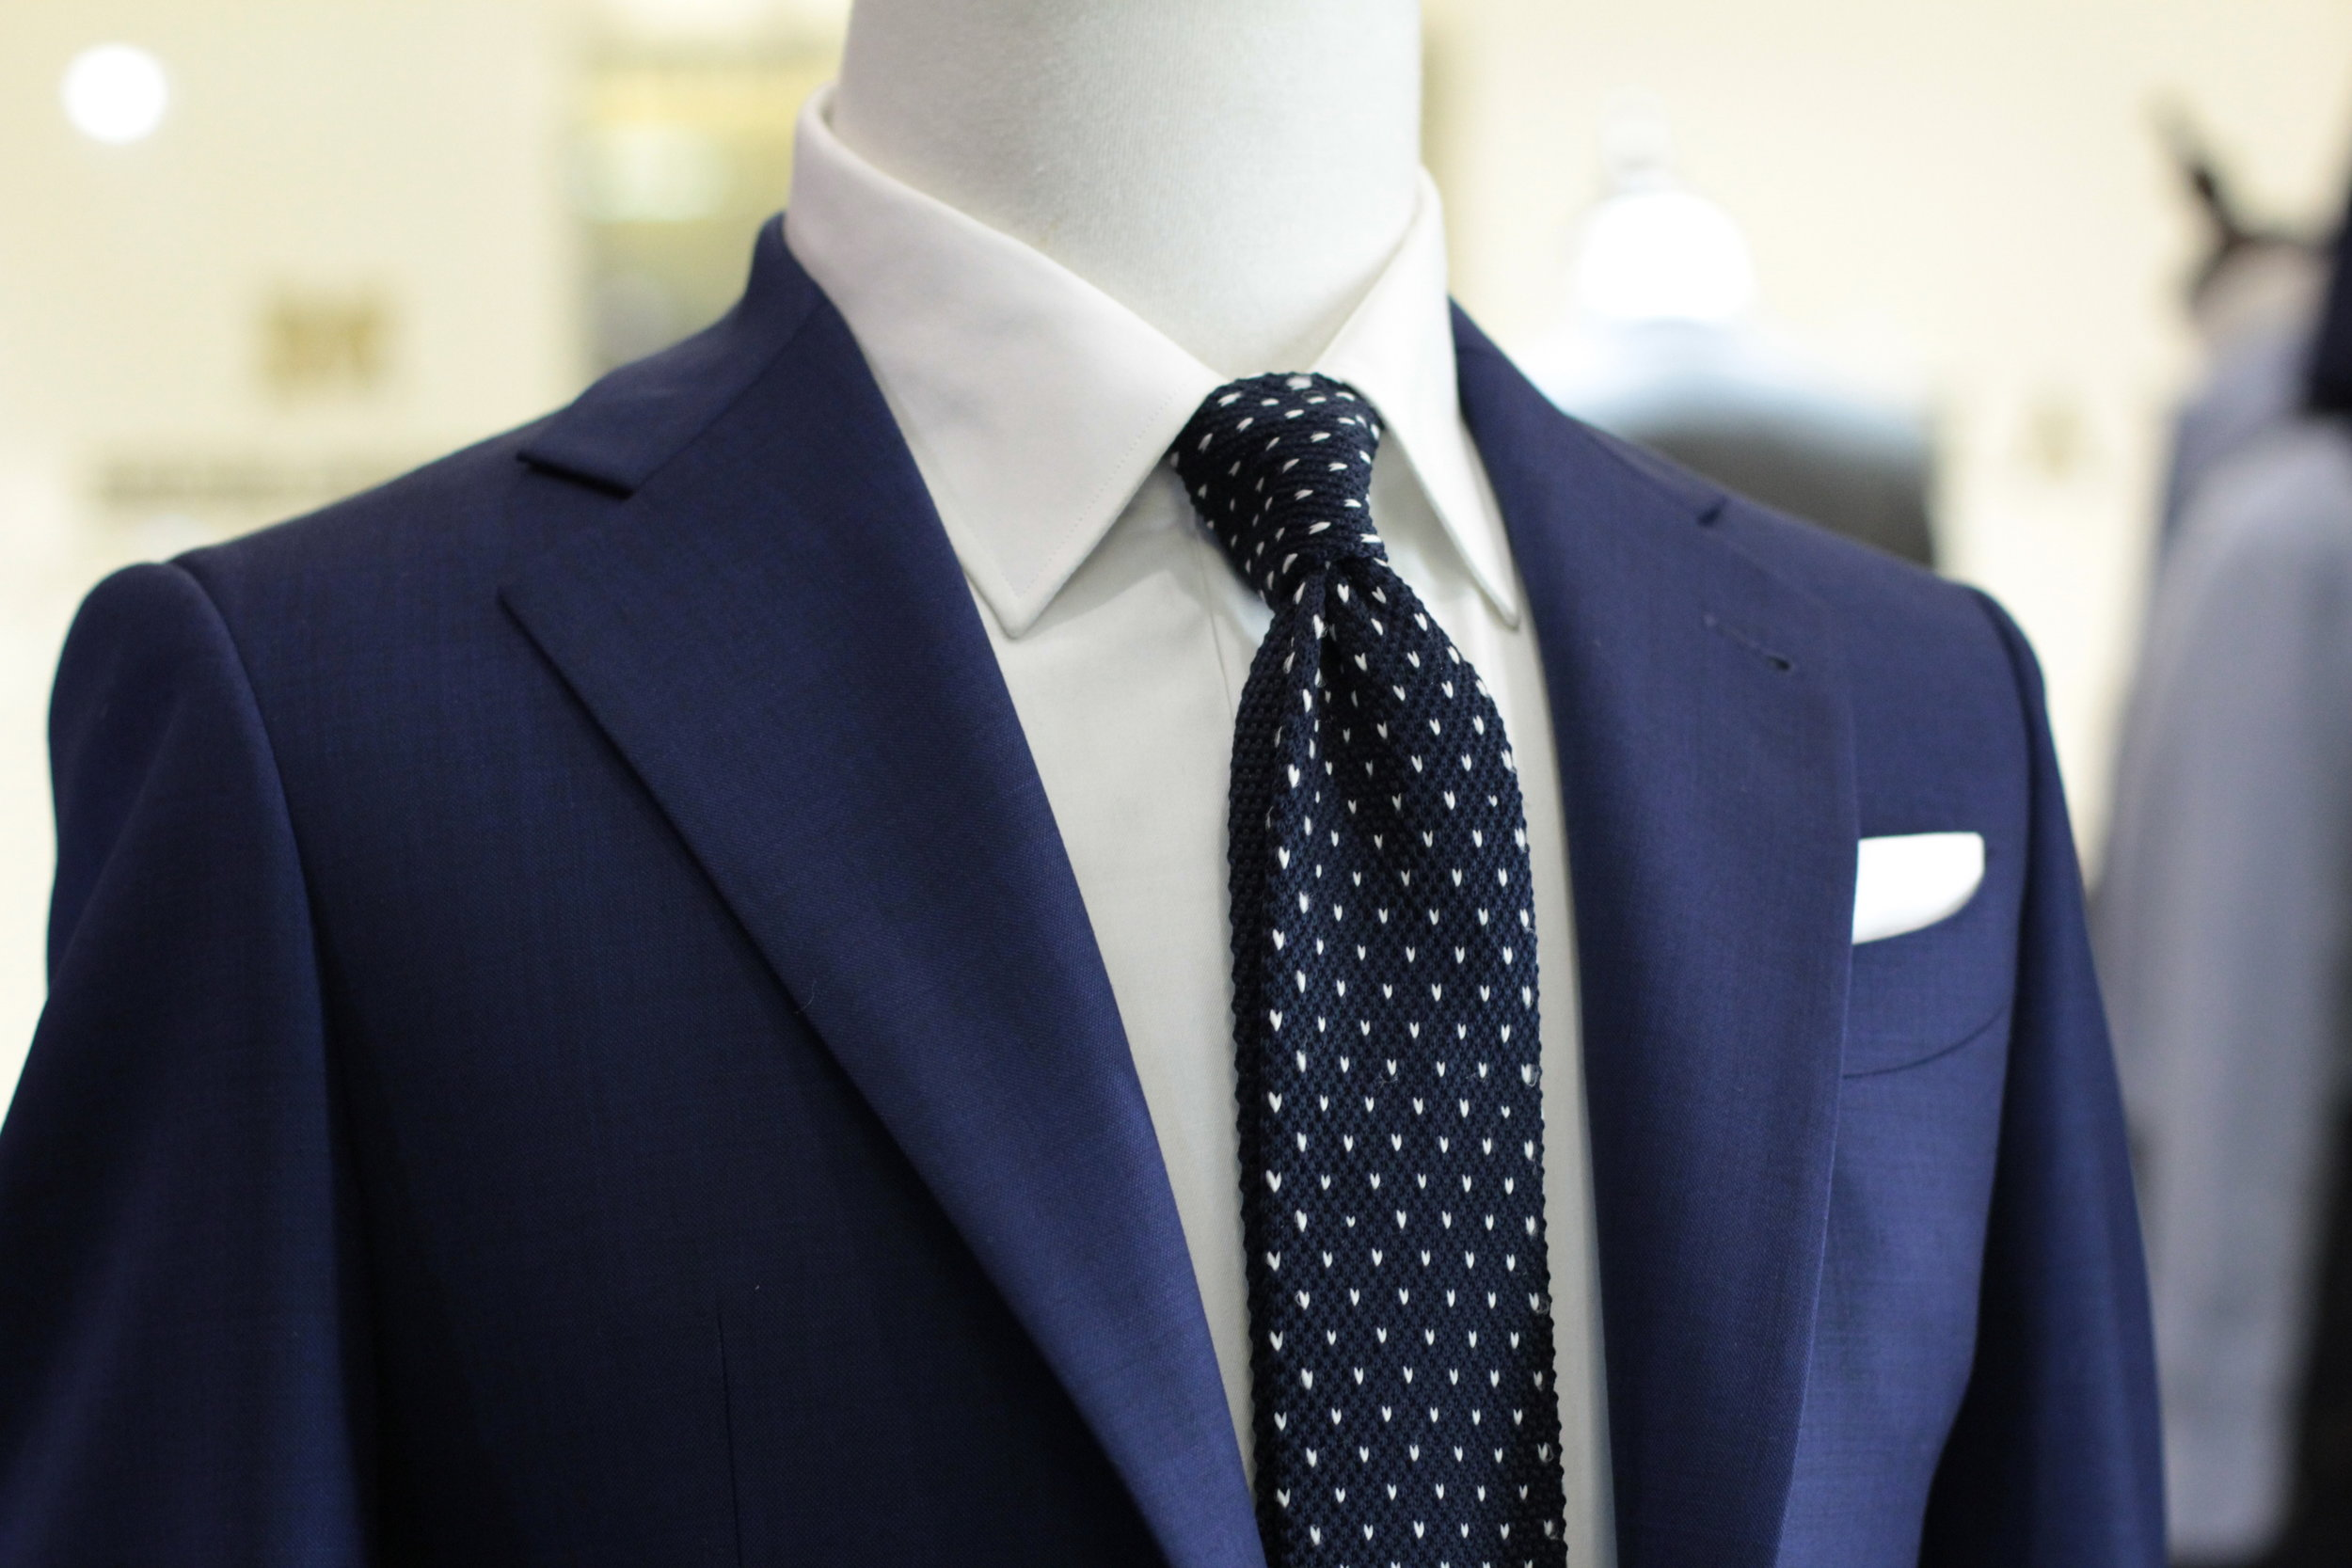 Made Suits Mr Lanky notched Lapel Suit Made to Measure Suit.JPG